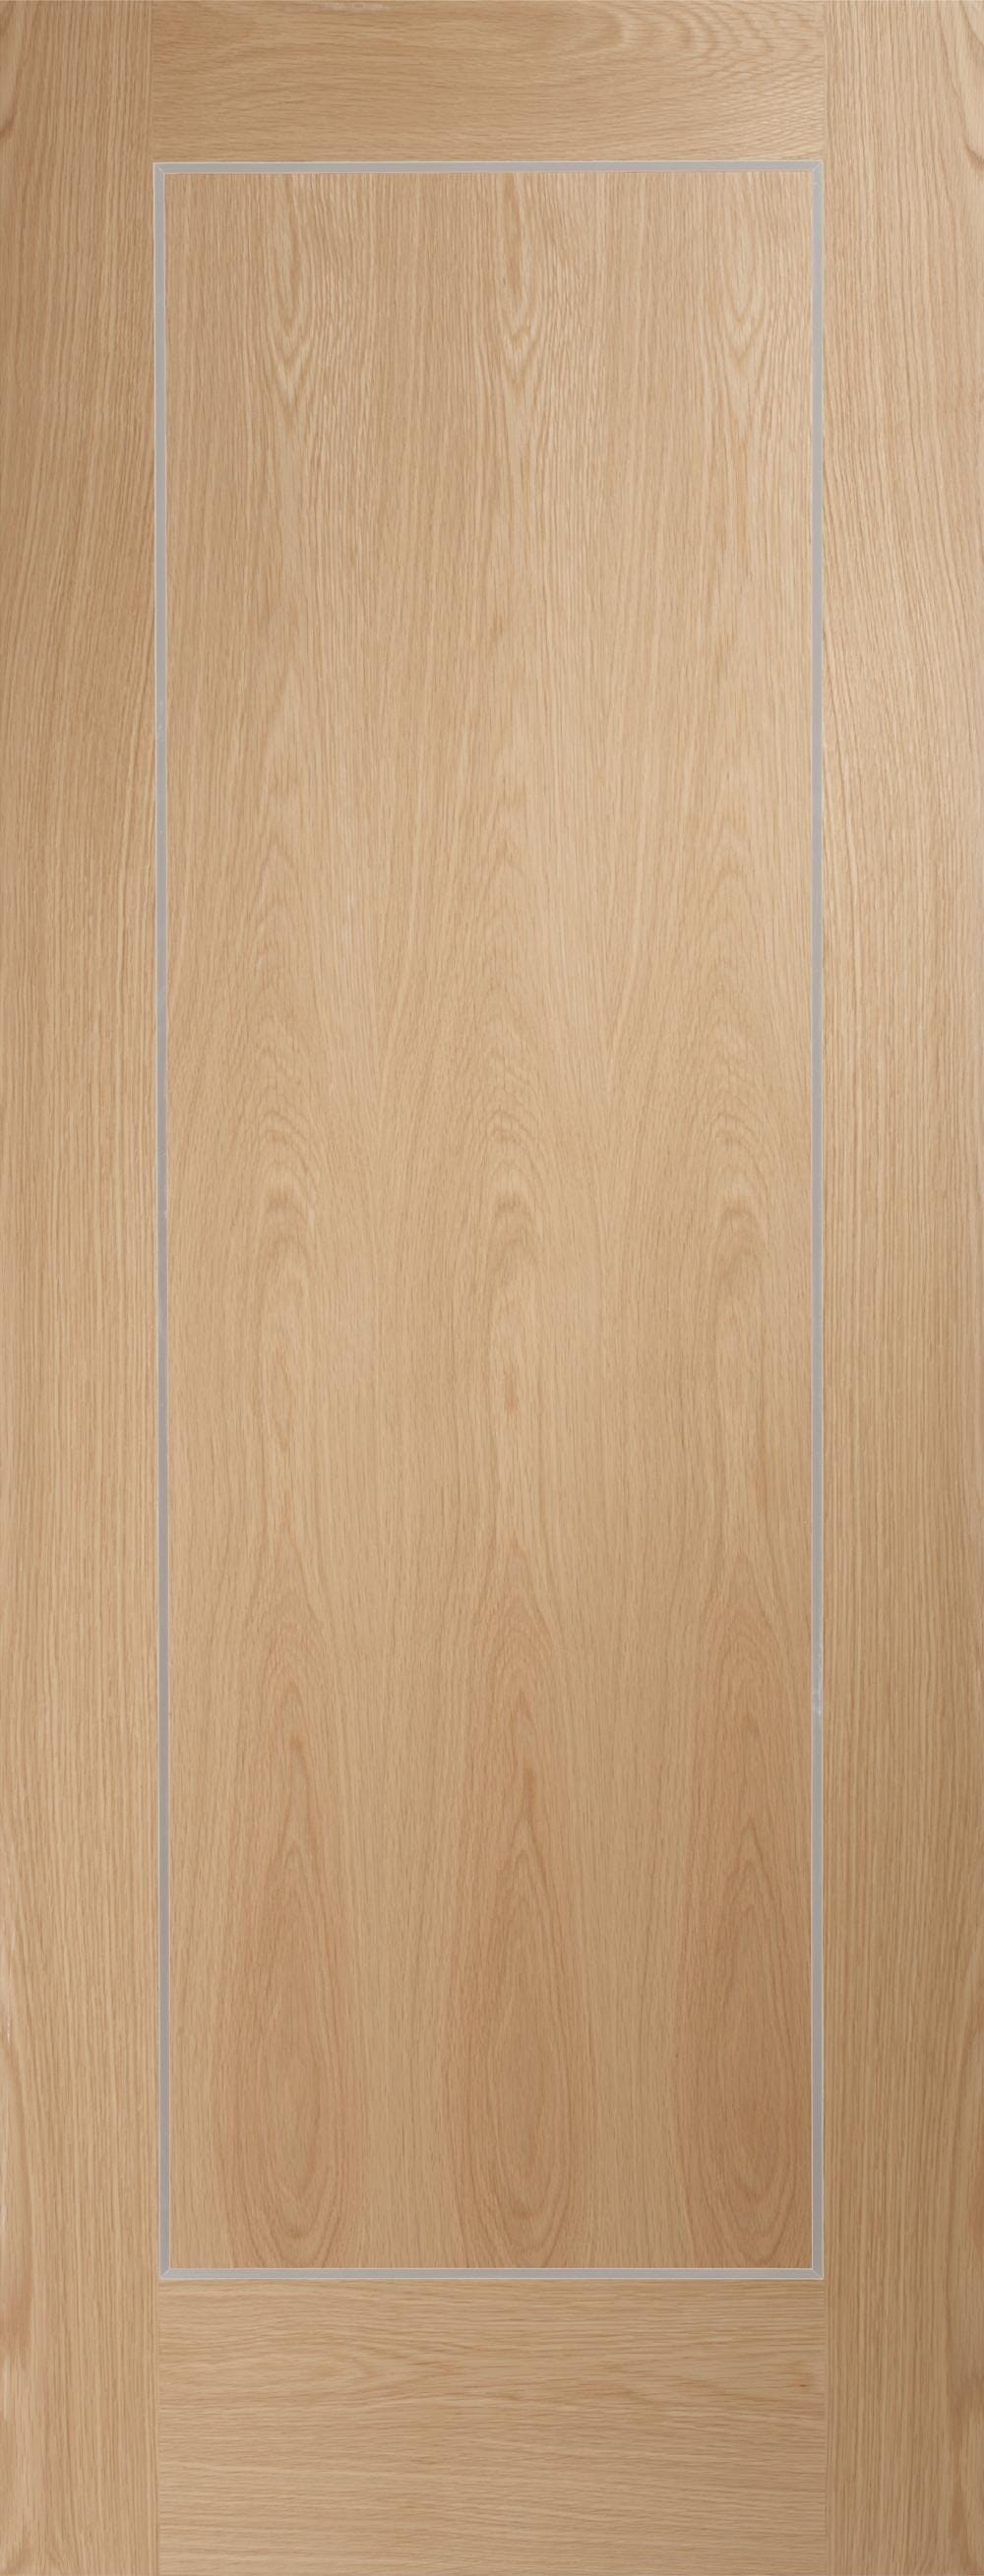 Varese Oak - Prefinished Image